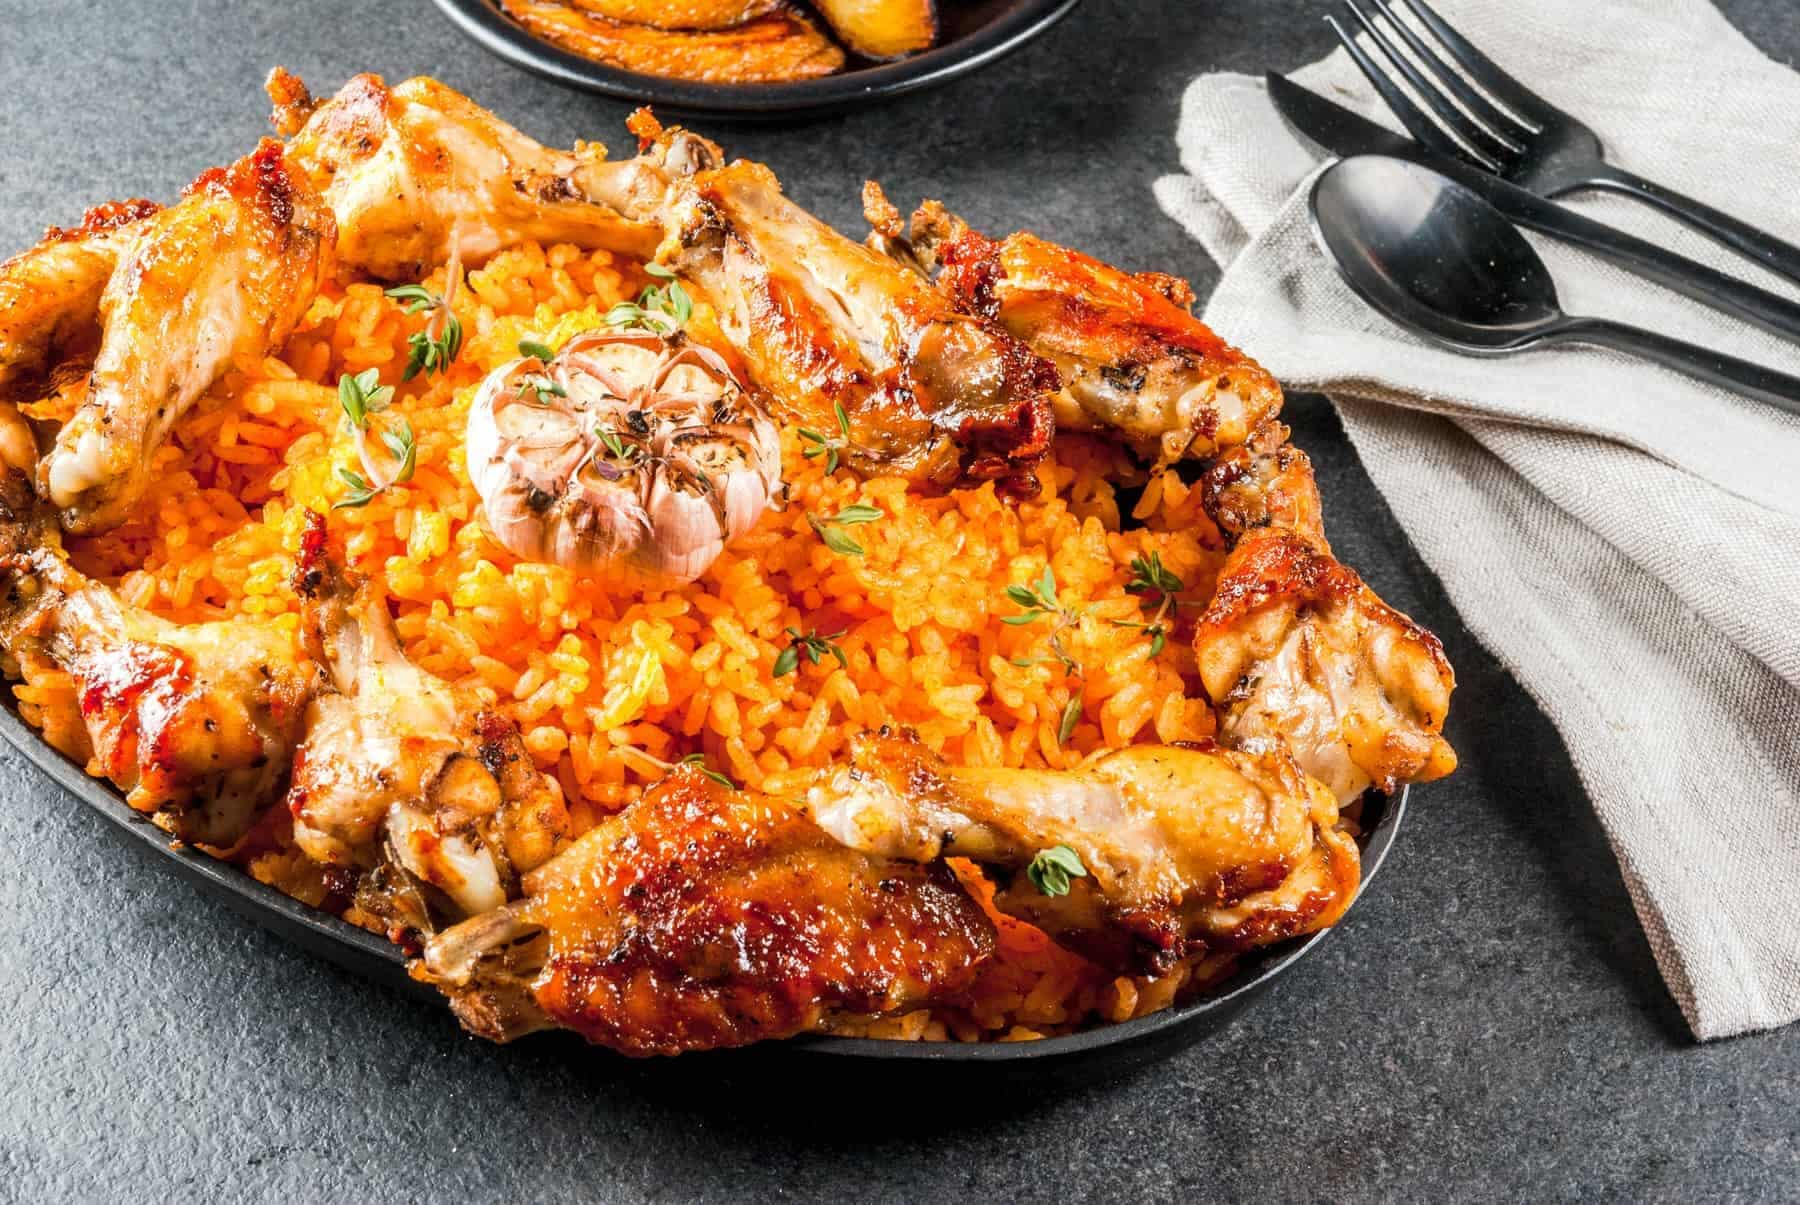 West African national cuisine. Nigeria. Jollof rice with grilled chicken wings and fried bananas plantains.